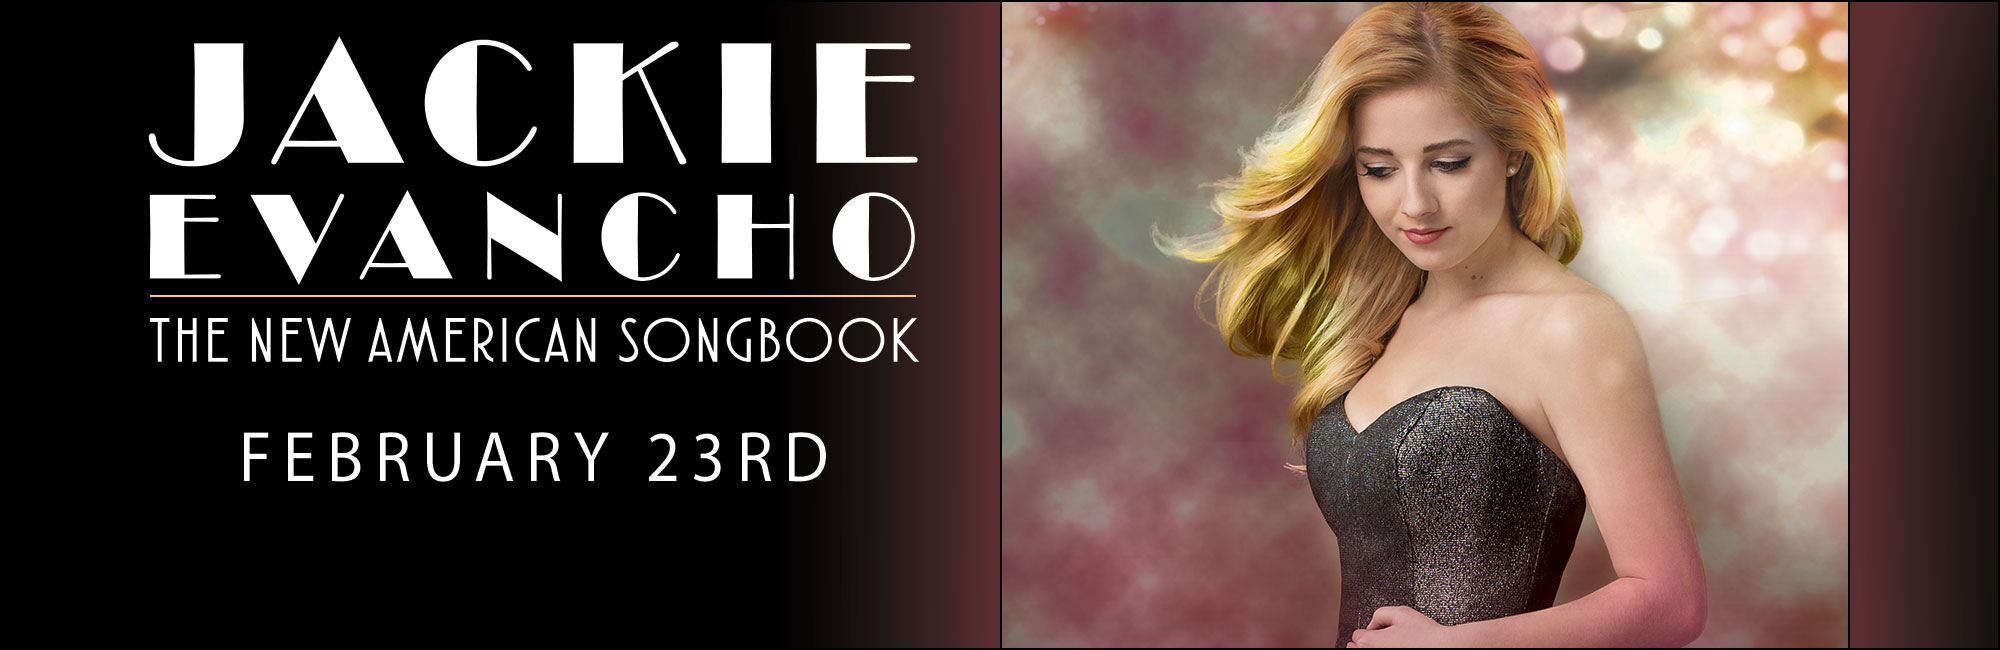 Jackie Evancho: An Evening with the New American Songbook